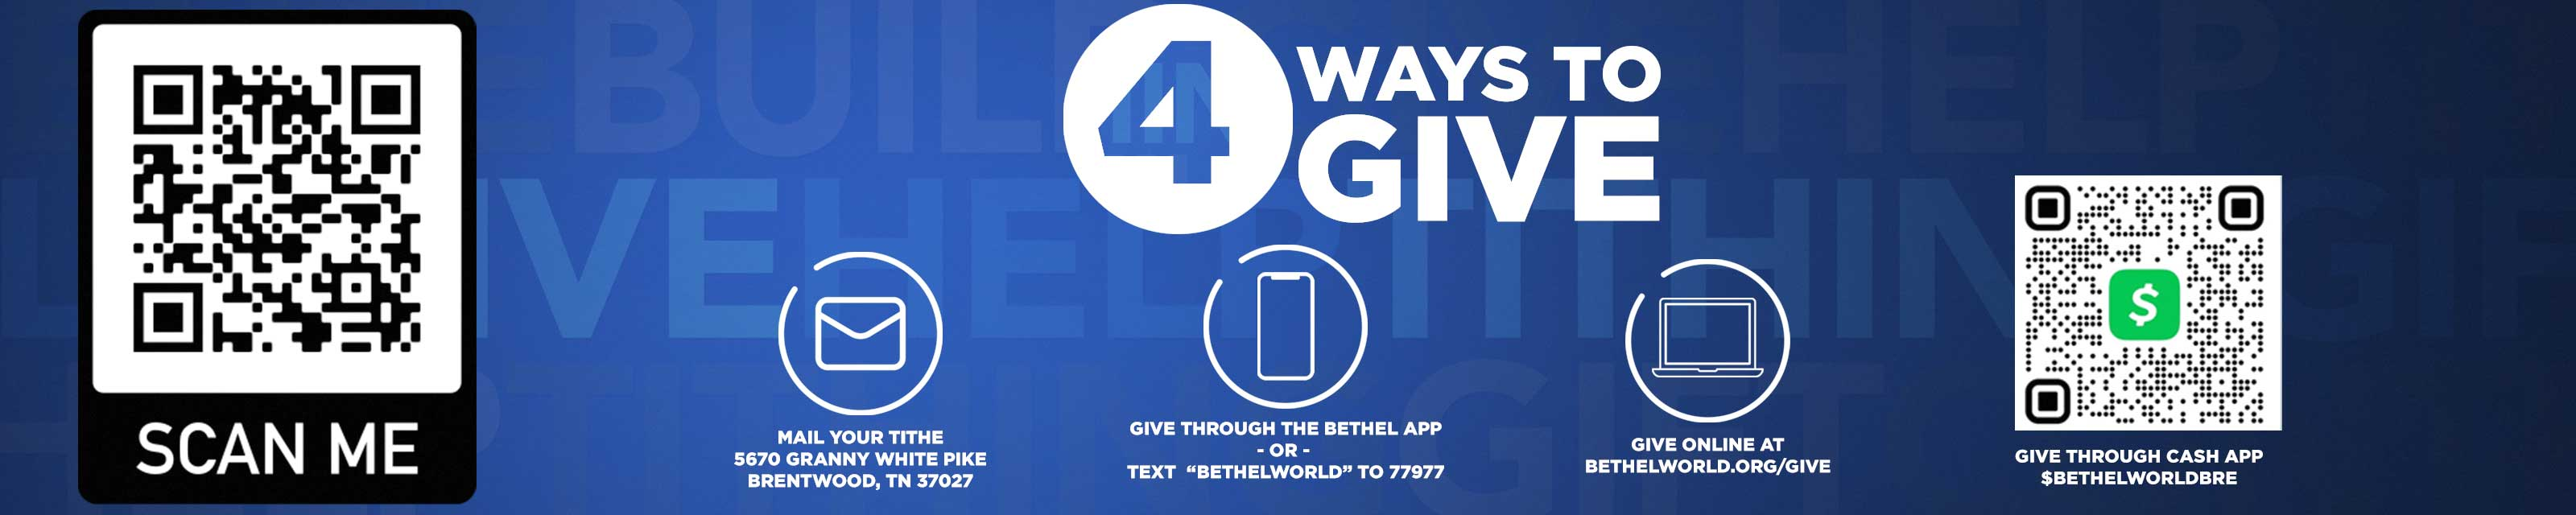 4 ways to give graphic